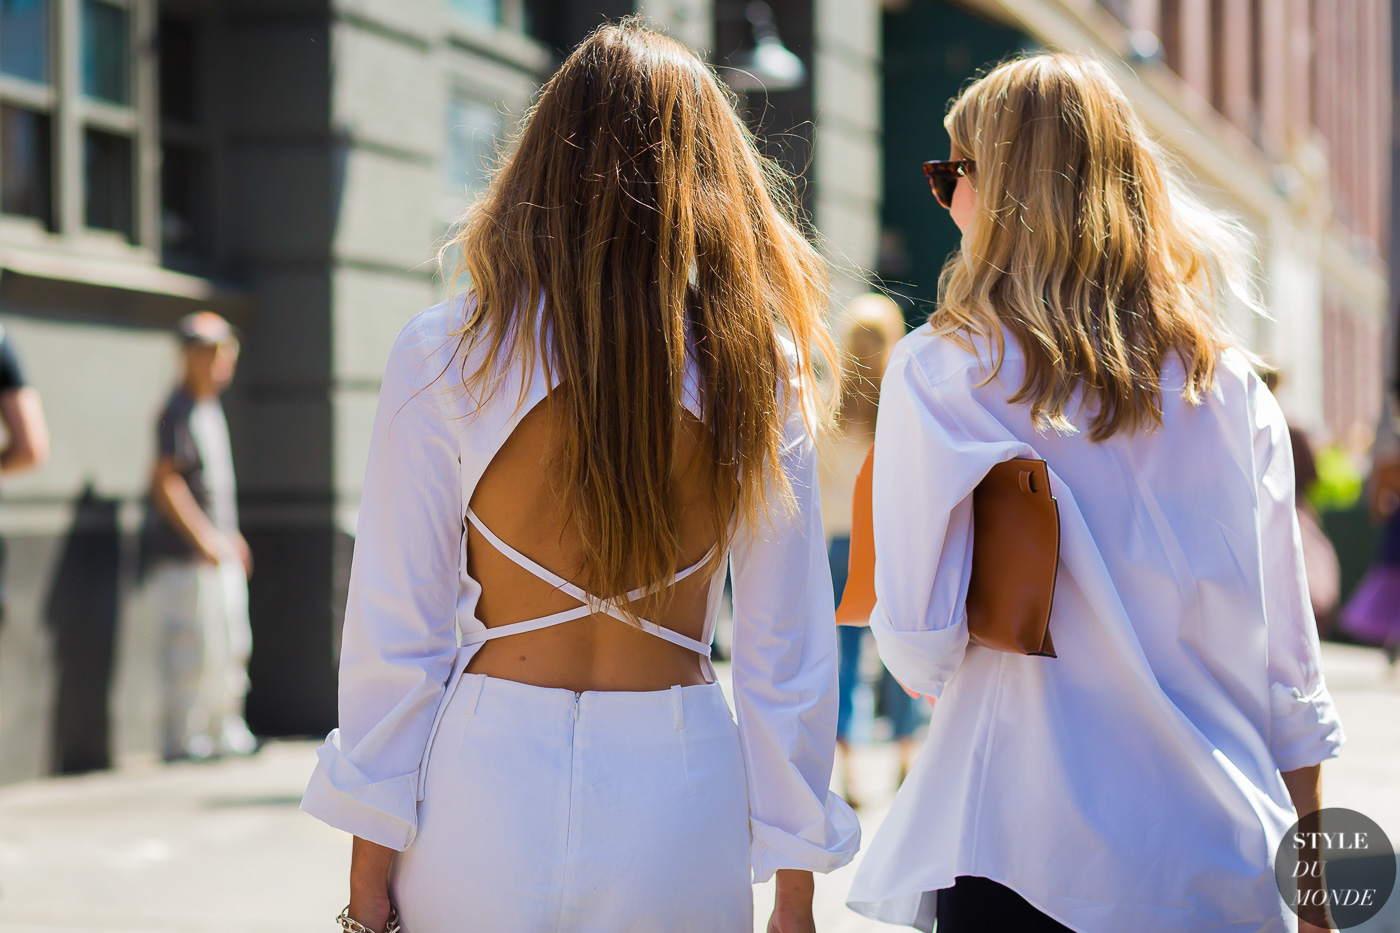 Laura Stoloff and Brie Welch by STYLEDUMONDE Street Style Fashion Photography